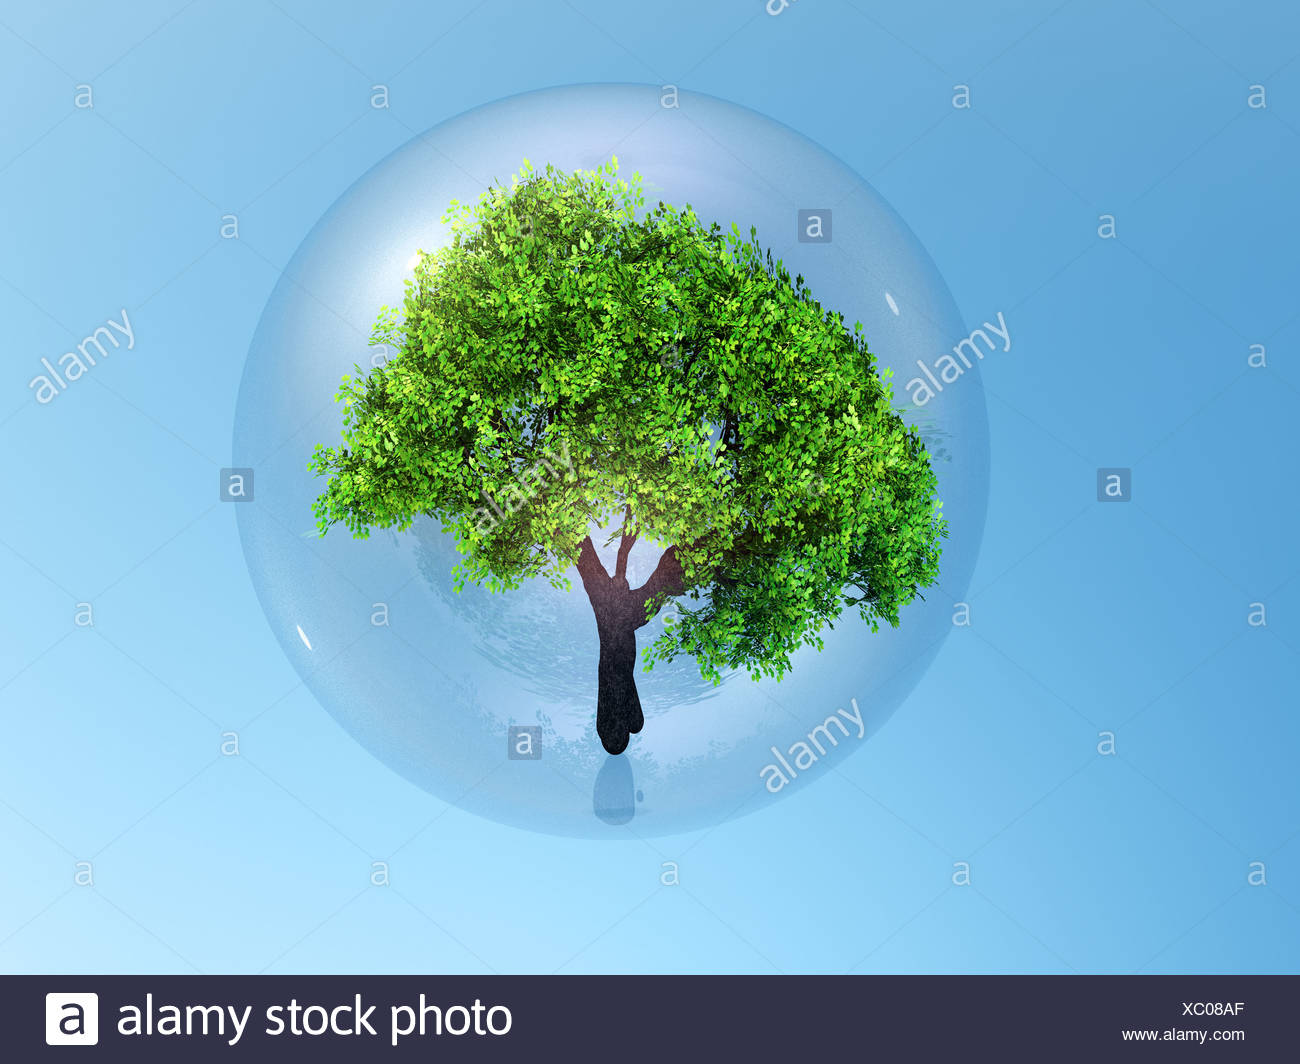 3 d illustration,a tree in  bubble - Stock Image